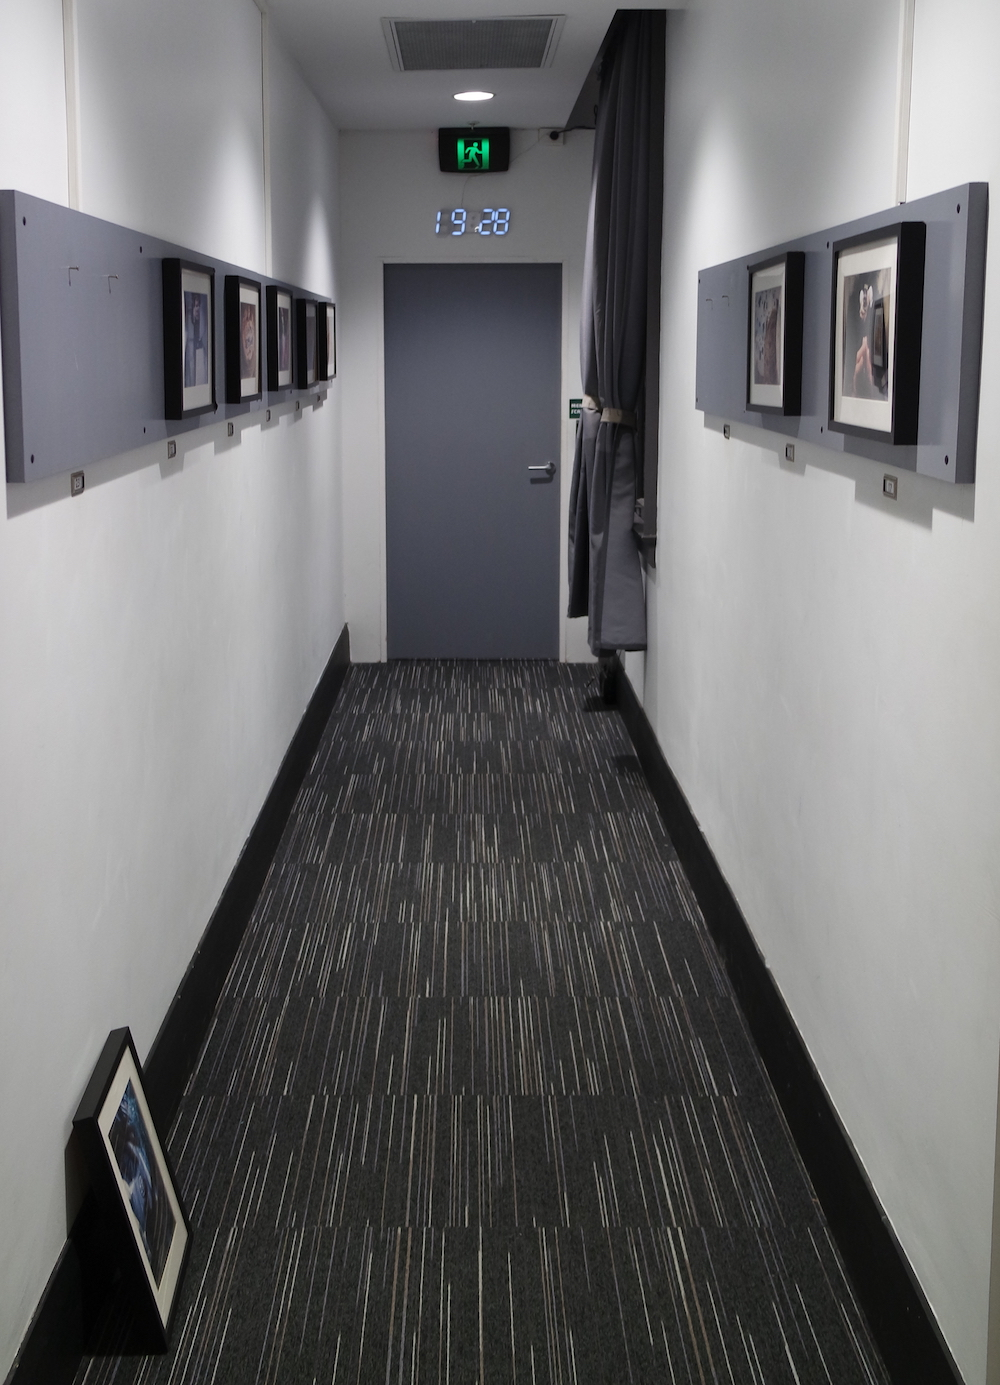 A long hallway with pictures mounted on the walls, an a picture on the floor leaned against the wall. The opposite wall has a door with a clock over it.